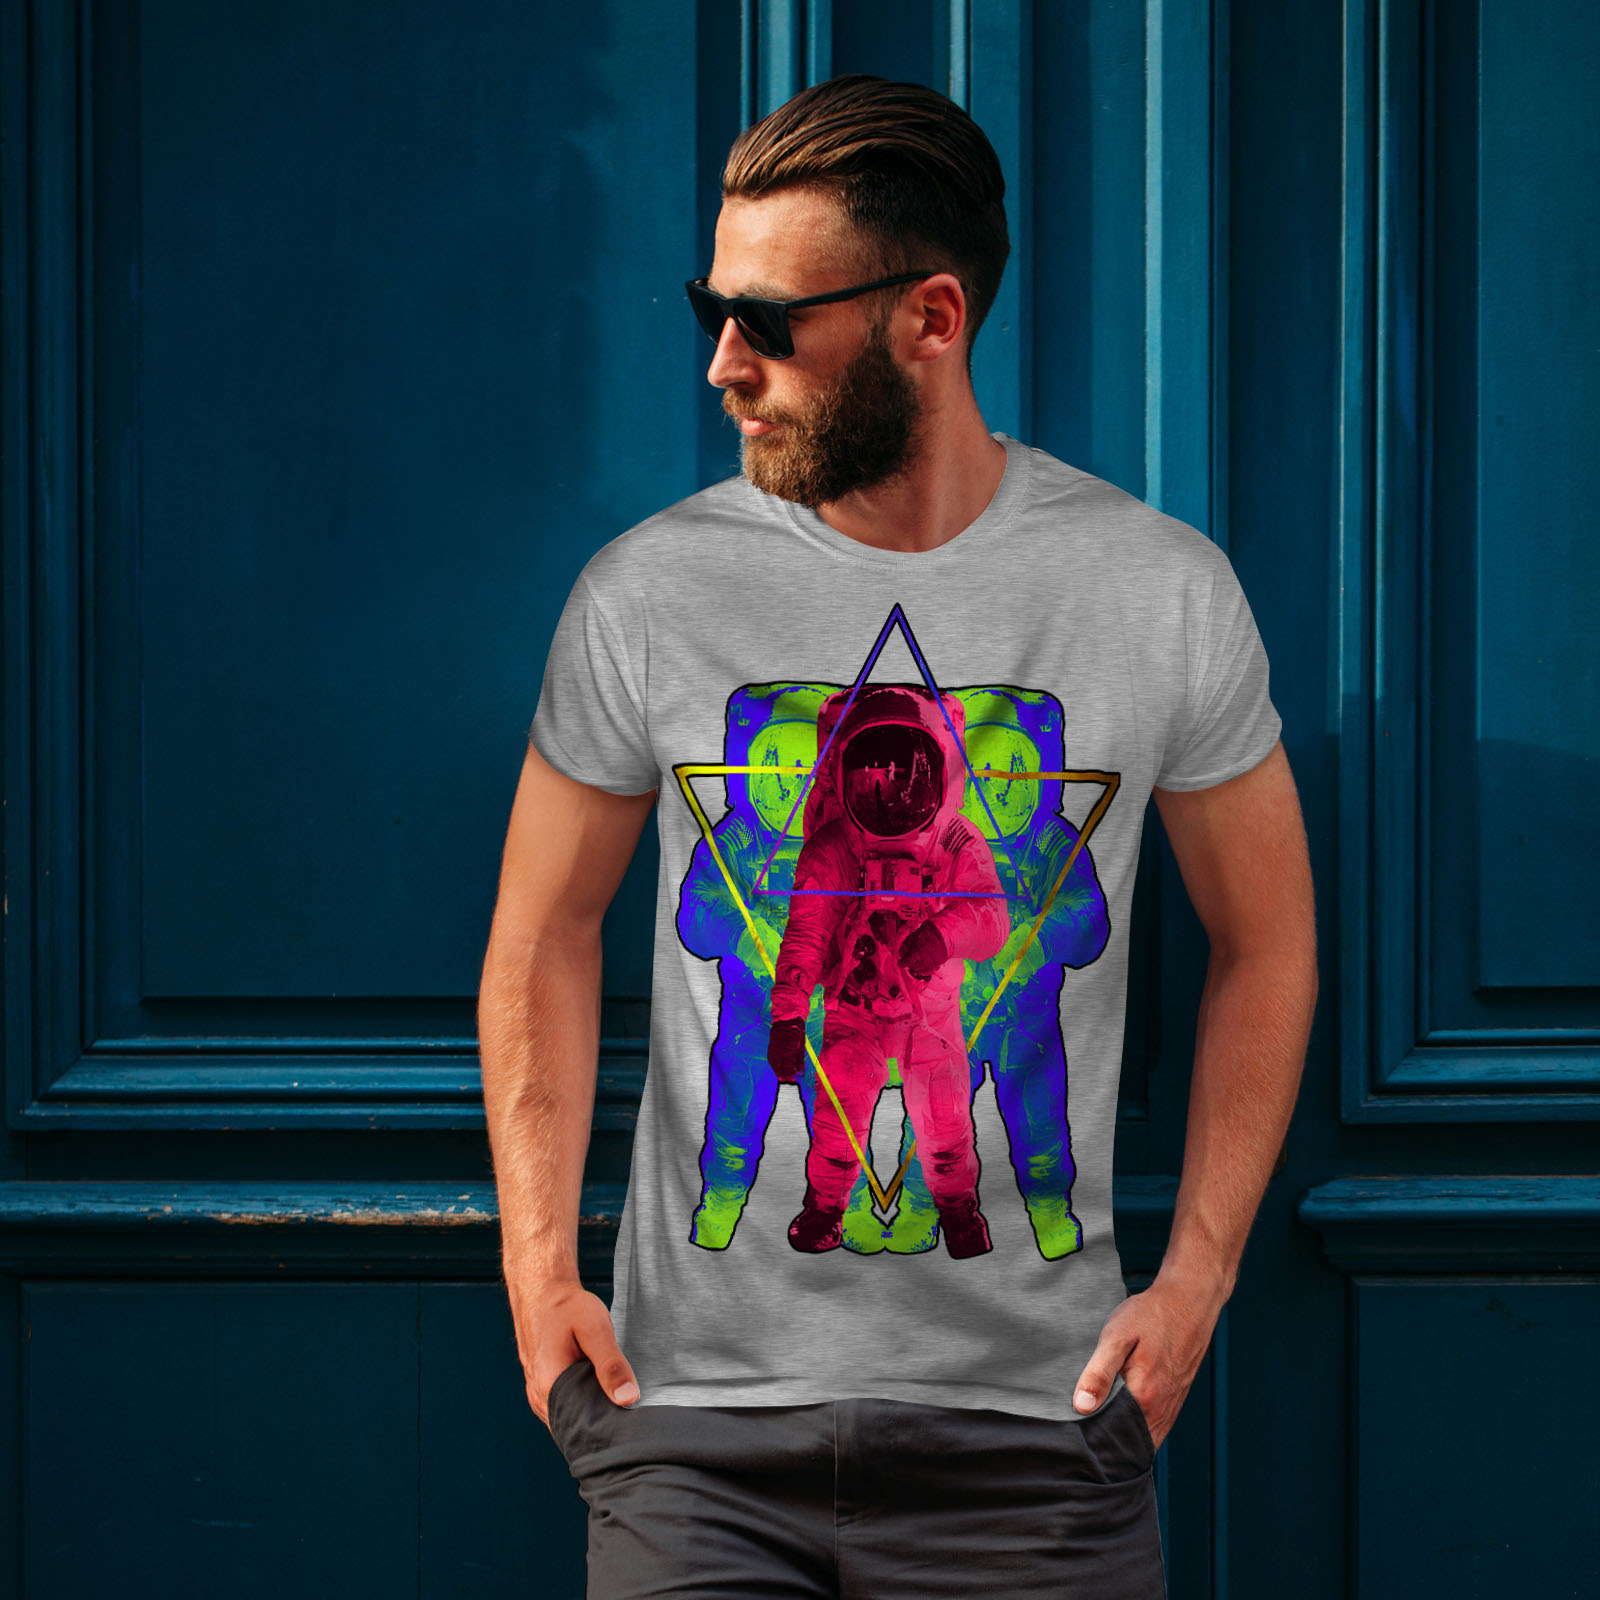 Wellcoda-Psychedelic-Astronaut-Mens-T-shirt-Star-Graphic-Design-Printed-Tee thumbnail 16